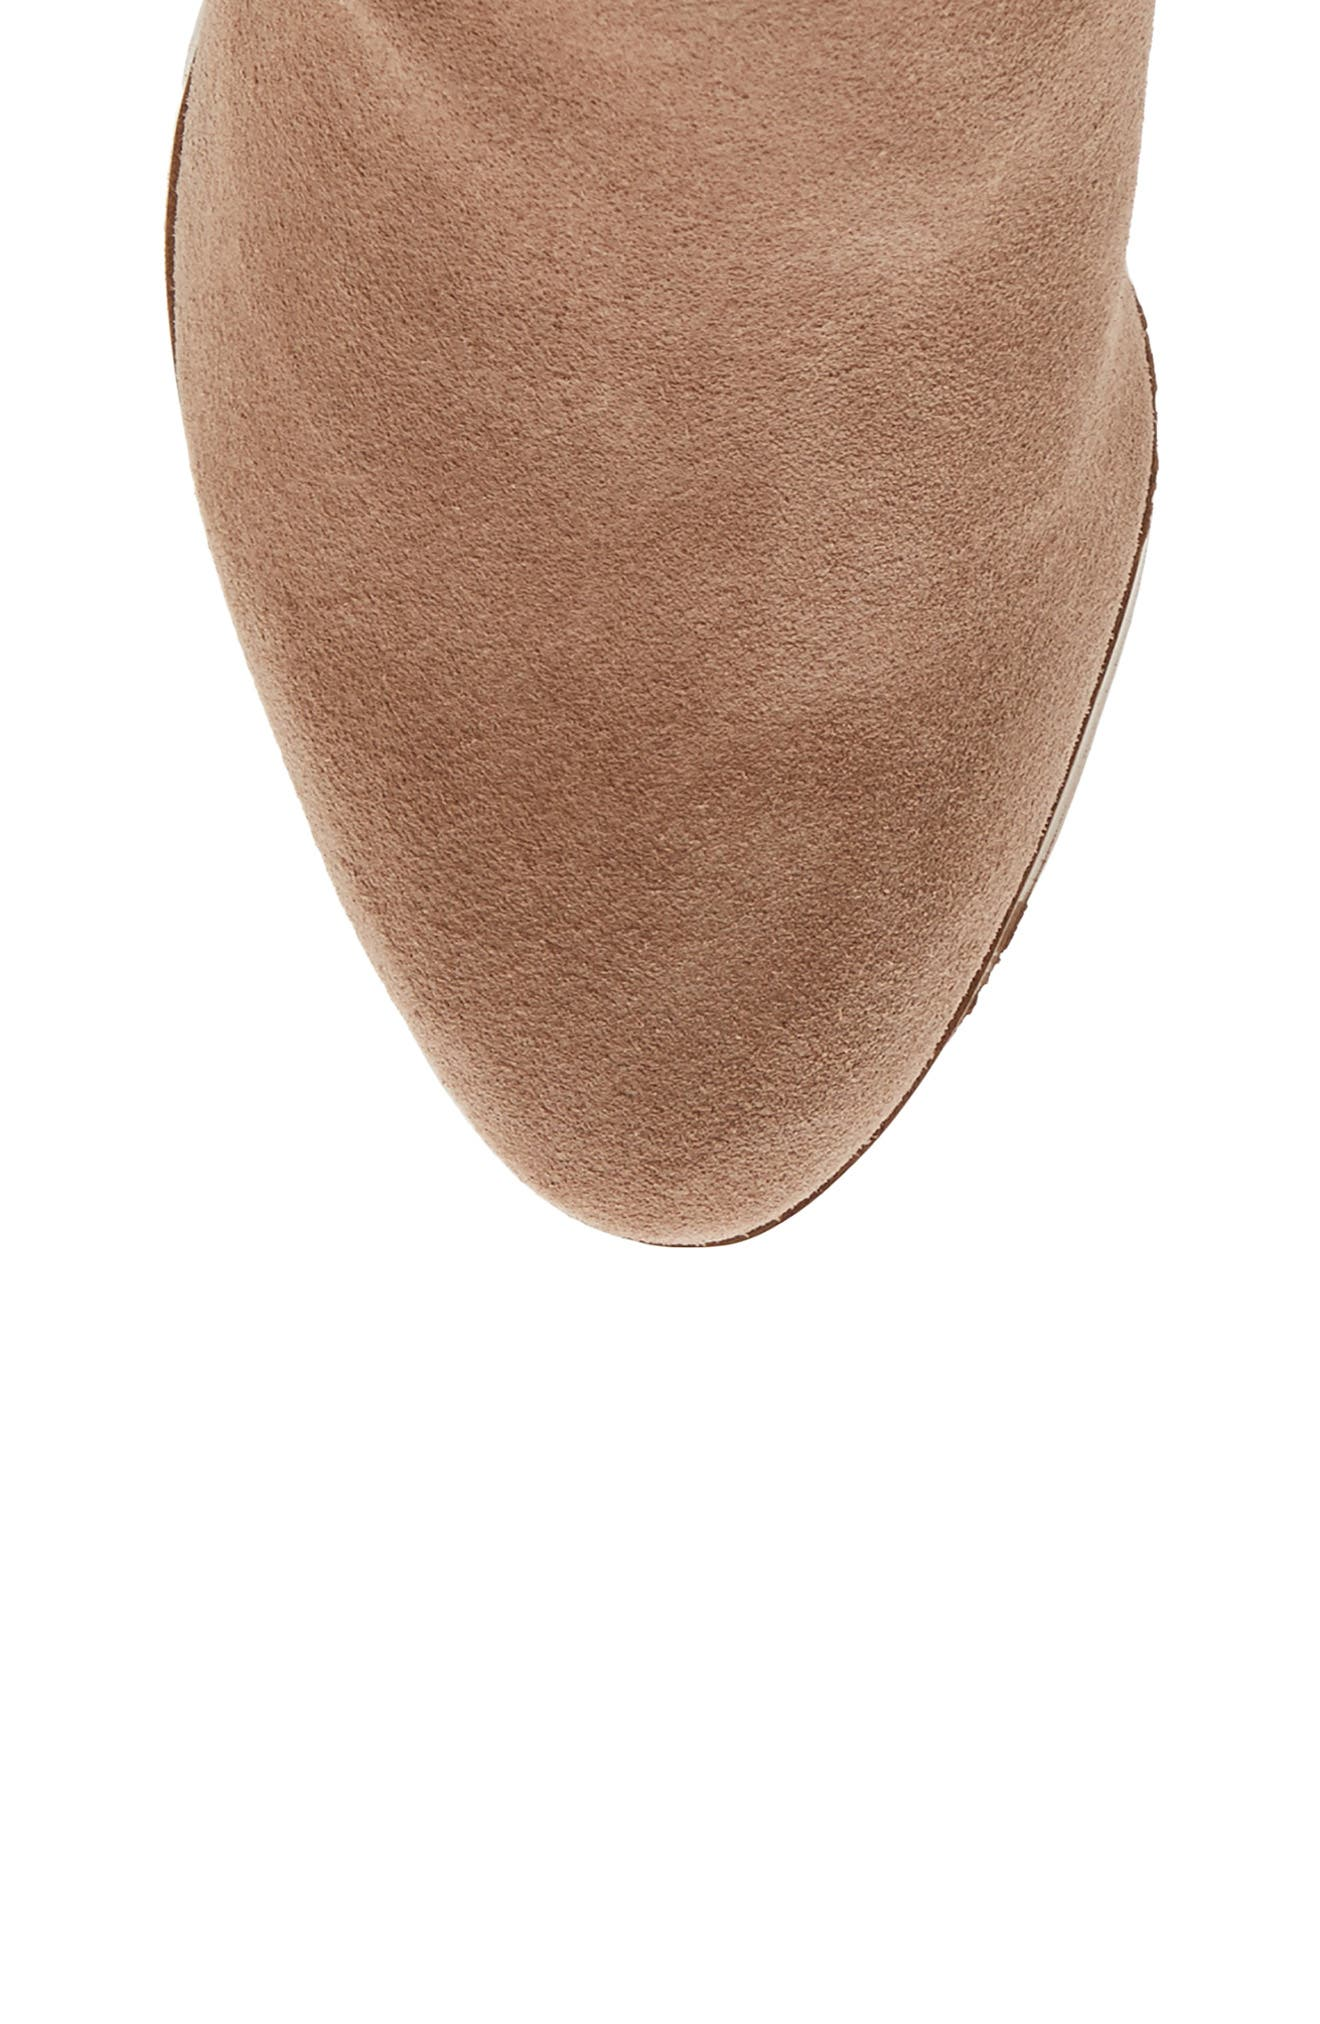 Melbourne Over the Knee Boot,                             Alternate thumbnail 5, color,                             Night Taupe Suede